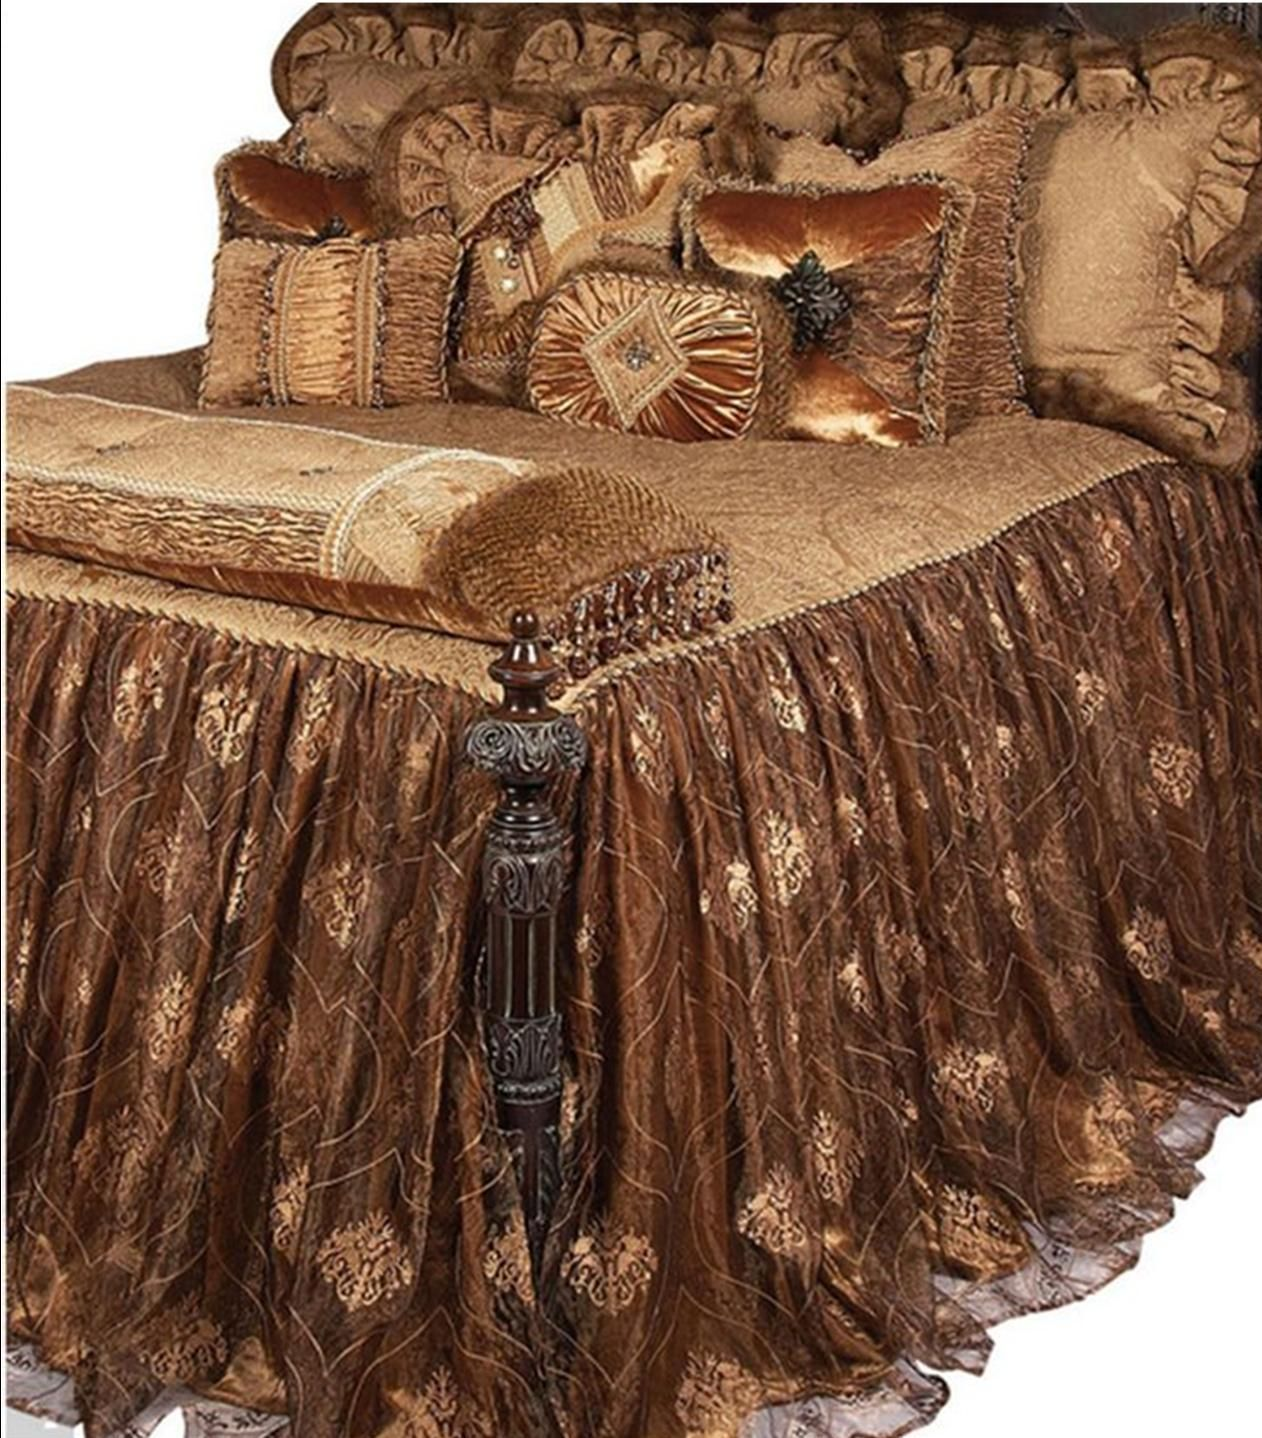 Luxury Old World High End Bedding By Reilly Chance Collection Now Available Directly To You The Home Ow Bed Linens Luxury Luxury Bedding Luxury Bedspreads